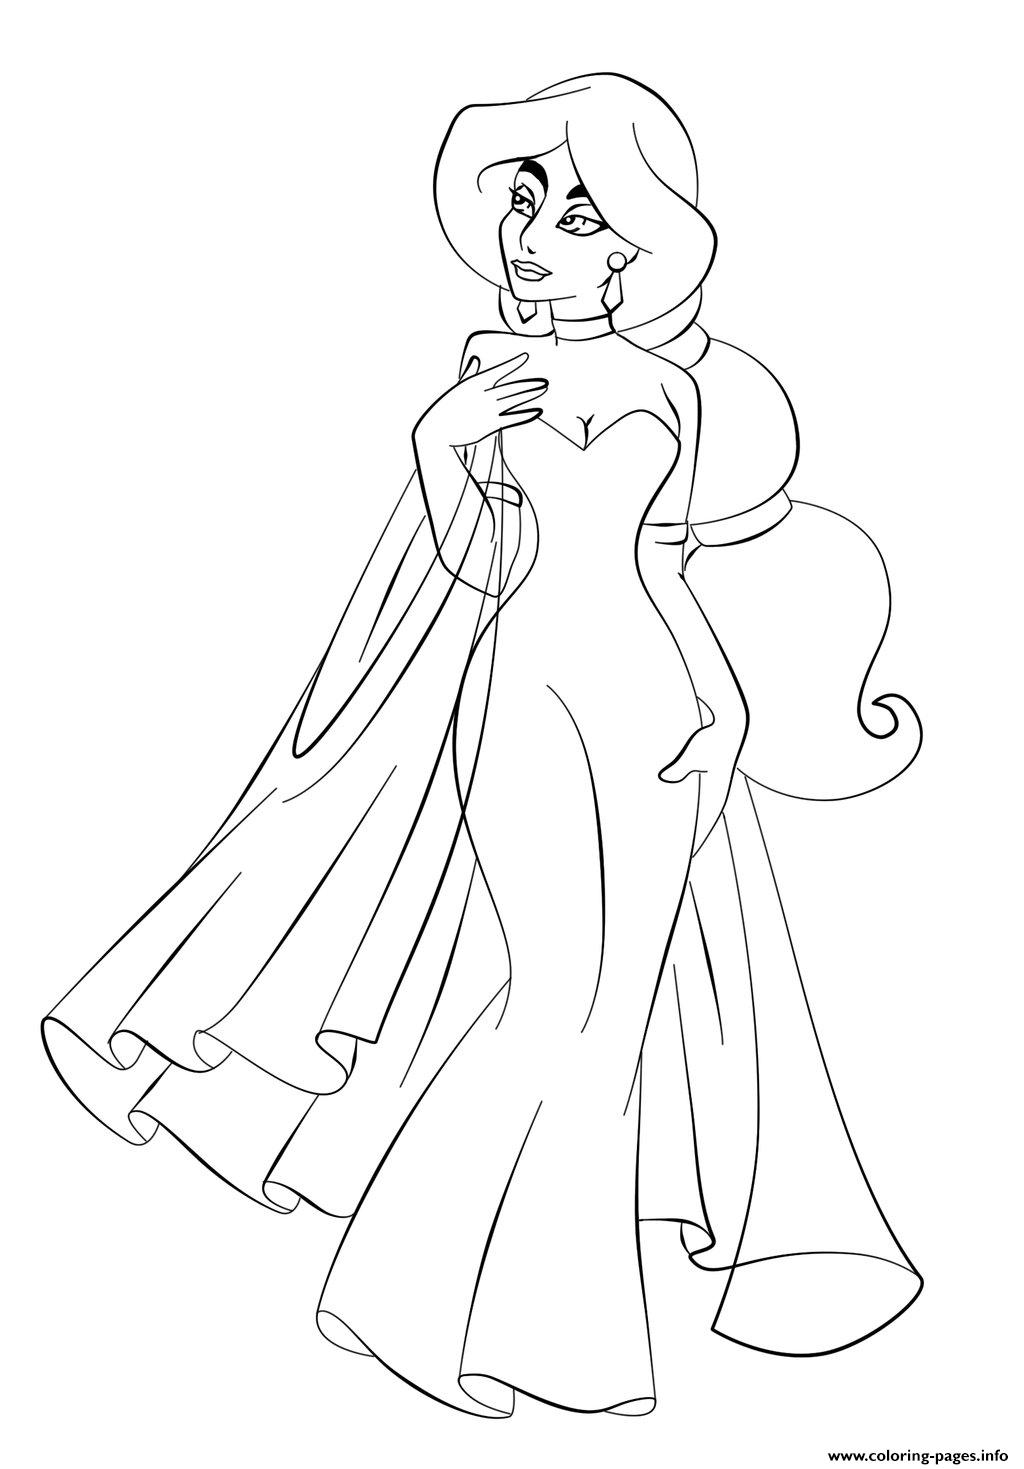 Princess jasmine coloring pages - Jasmine In Wedding Dress Disney Princess S6993 Coloring Pages